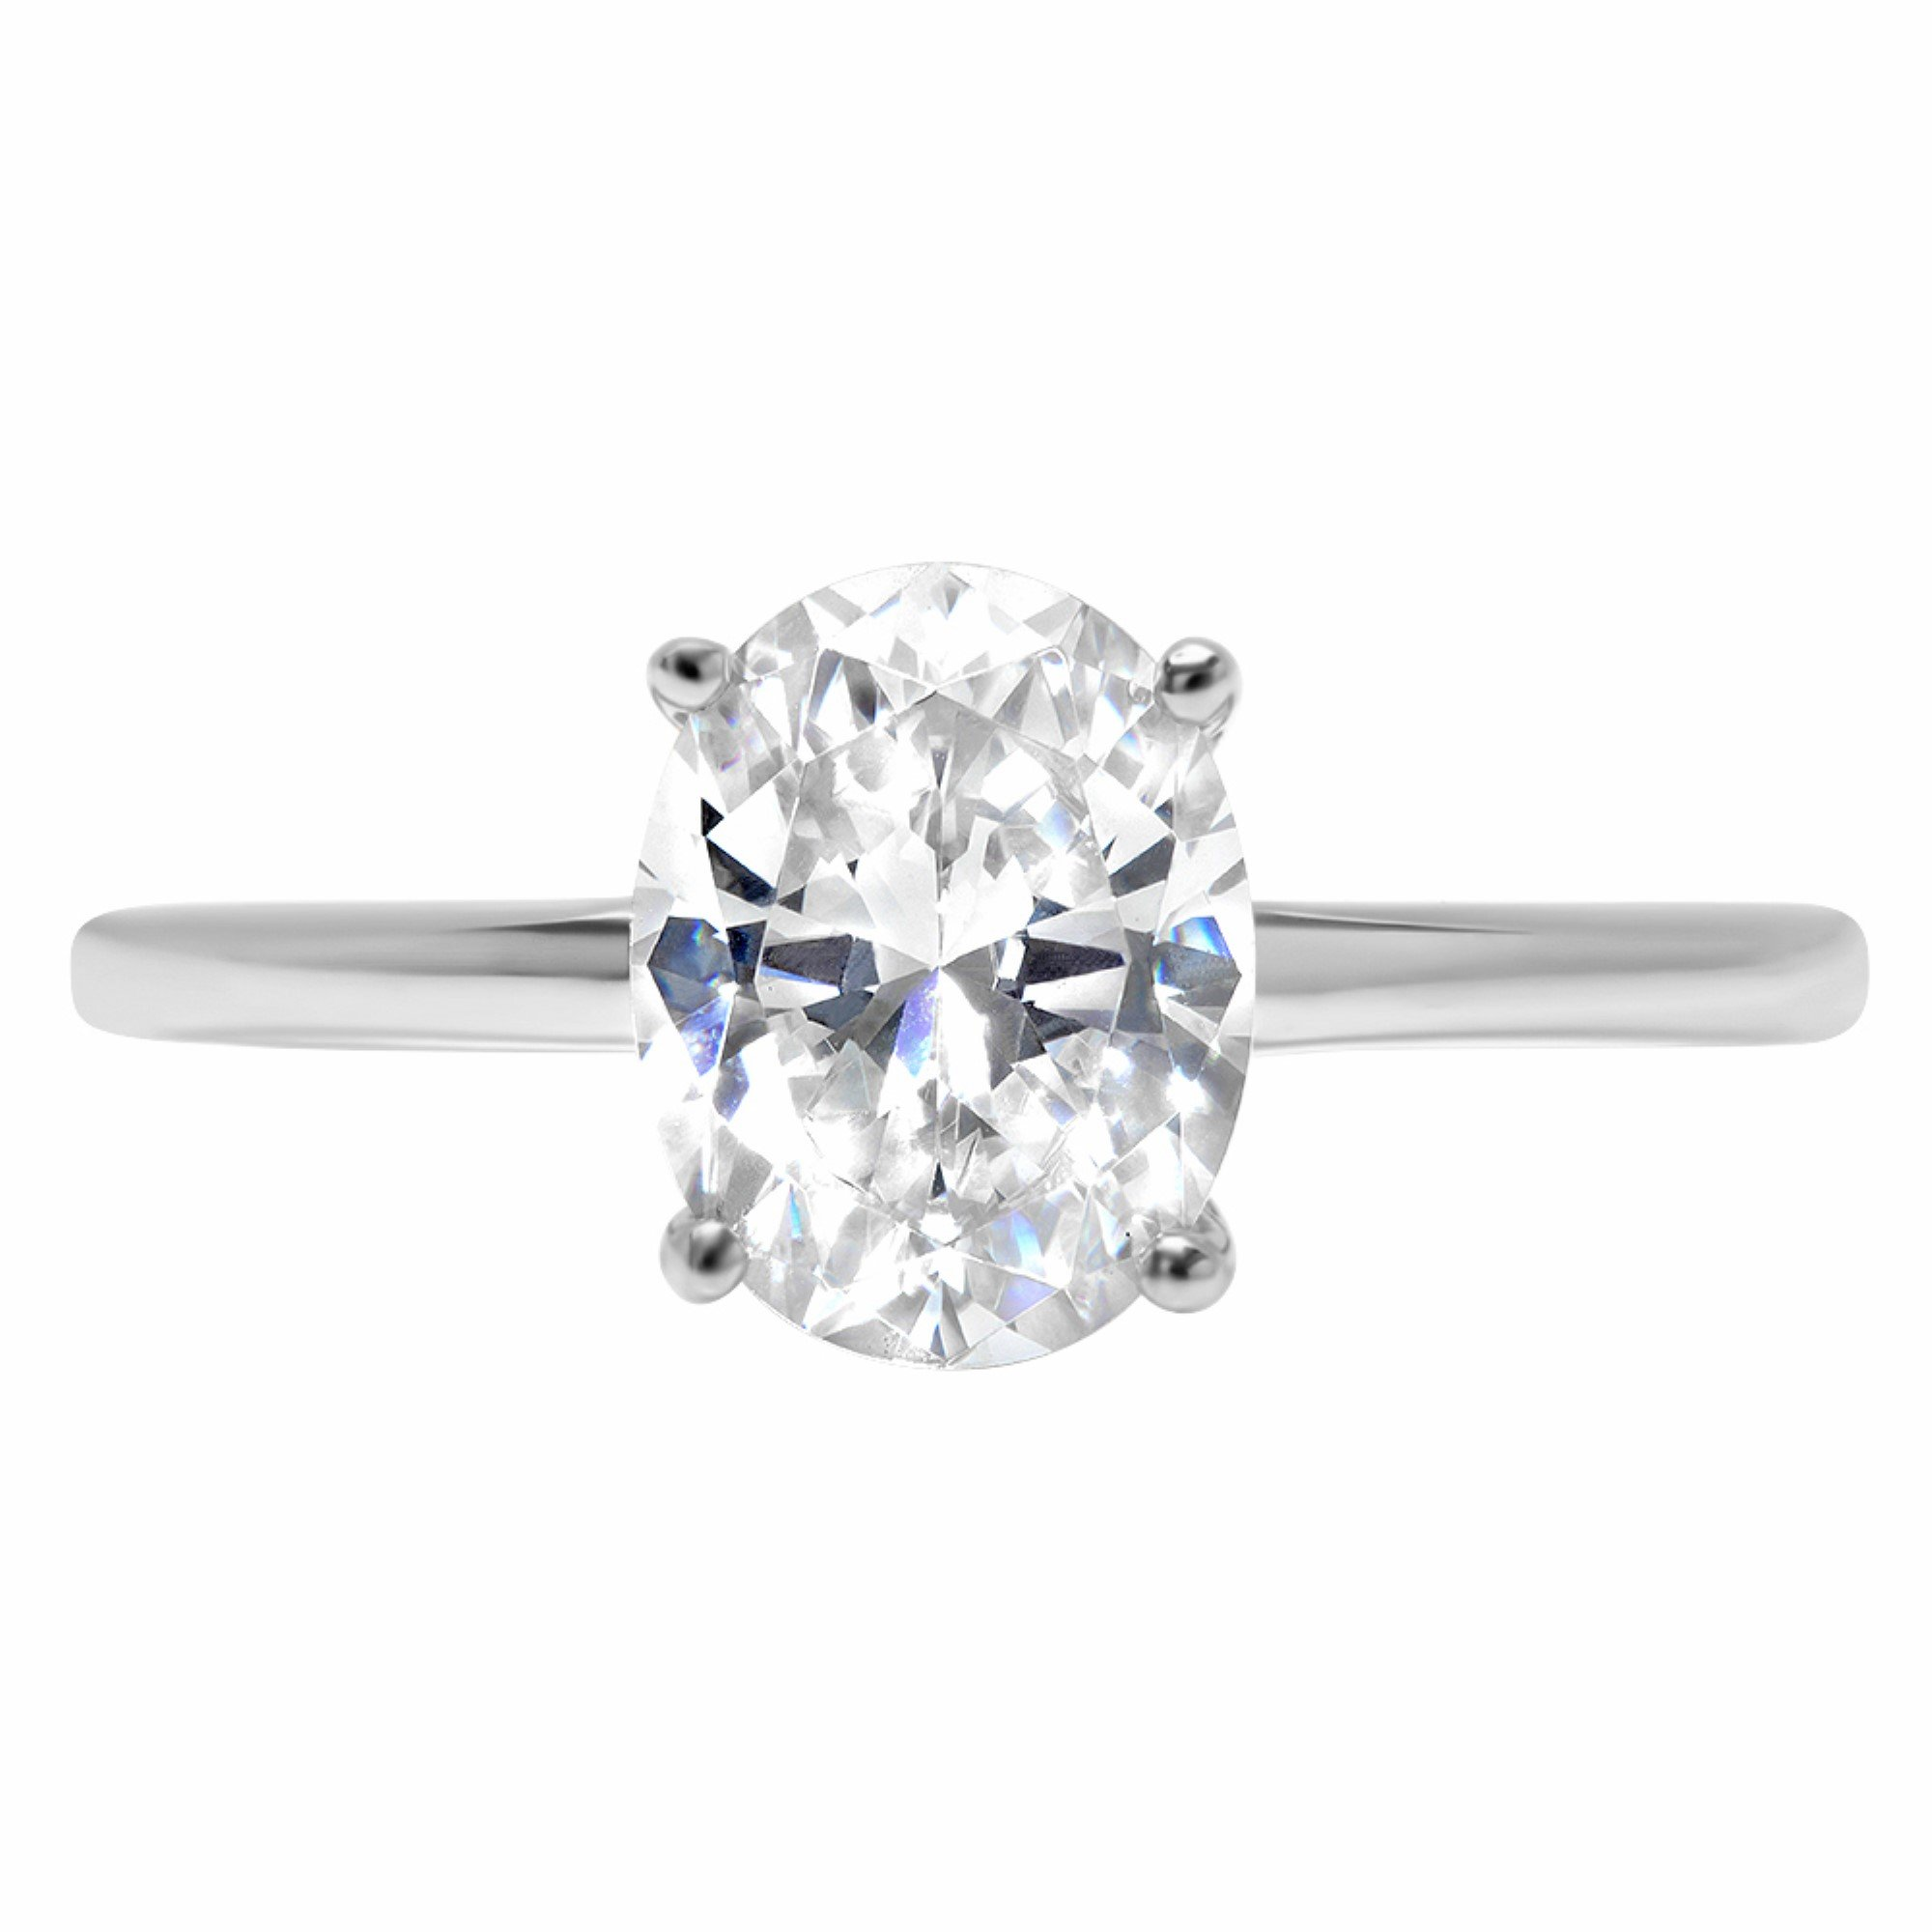 14k White Gold 1.8ct Oval Brilliant Cut Classic Solitaire Designer Wedding Bridal Statement Anniversary Engagement Promise Ring Solid, 8.5, 8.5